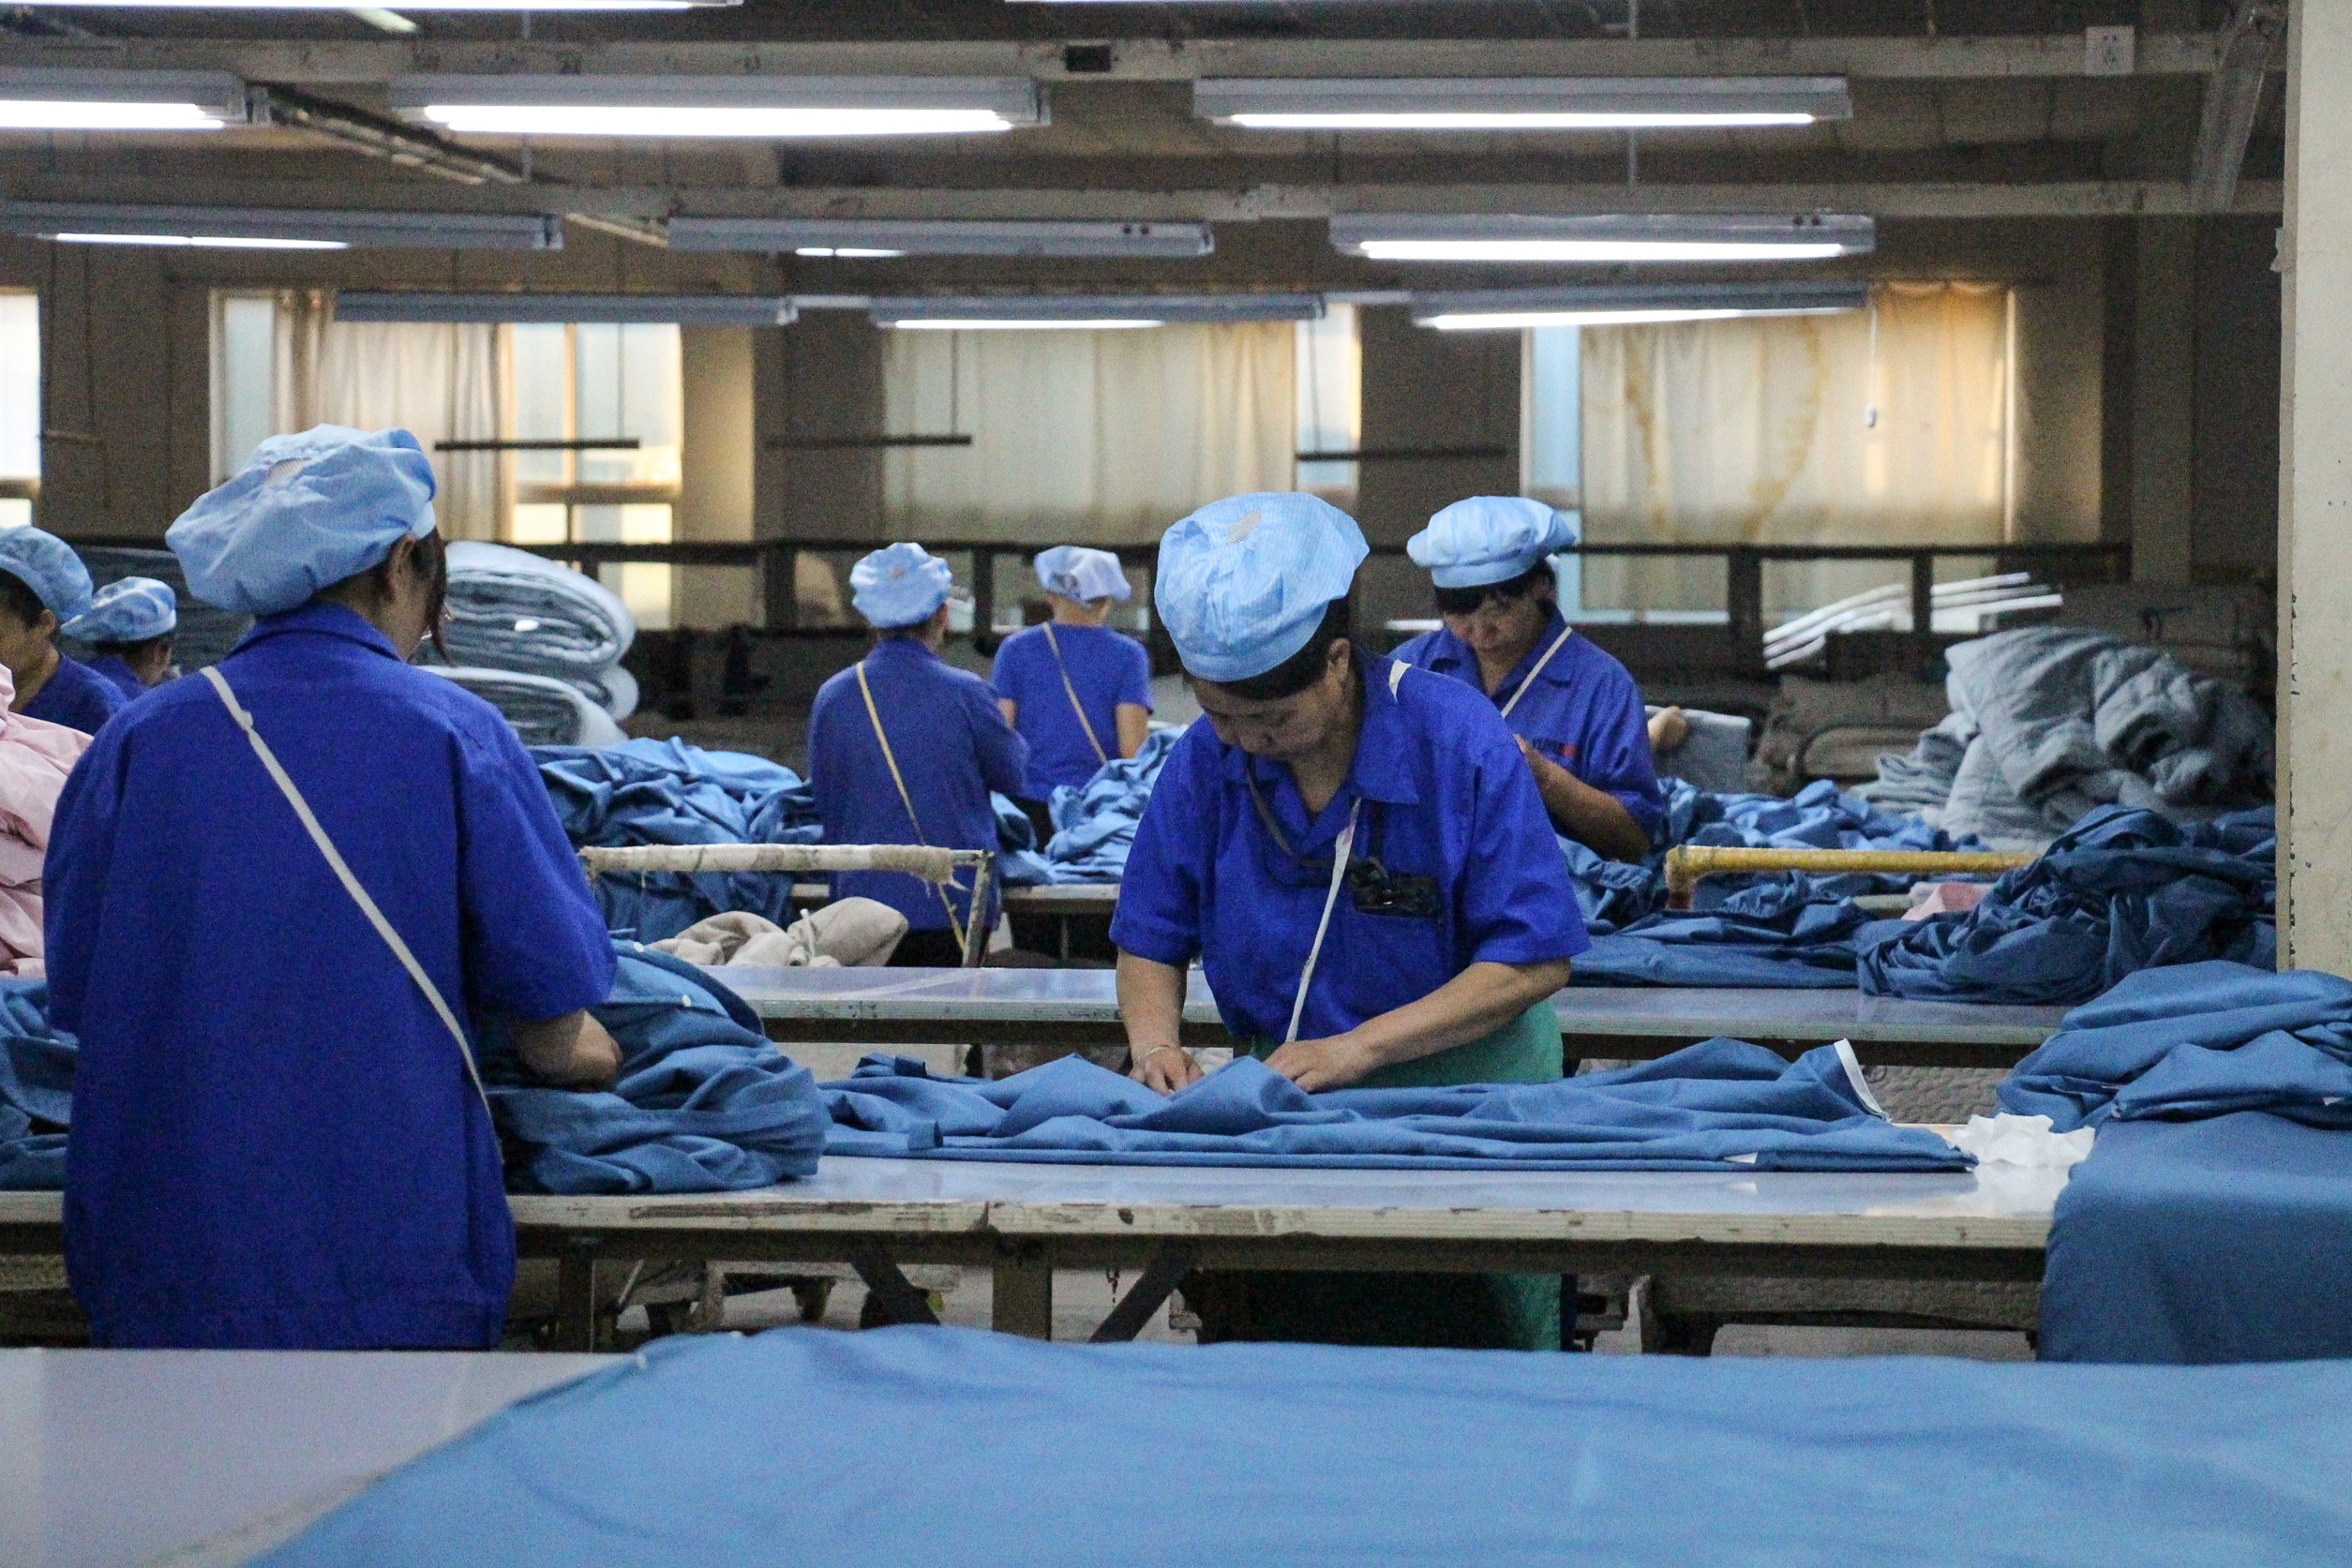 This photo taken on August 29, 2019 shows workers producing cloth that will be exported to the US at a textile factory in Binzhou, China's eastern Shandong province. (STR/AFP via Getty Images)